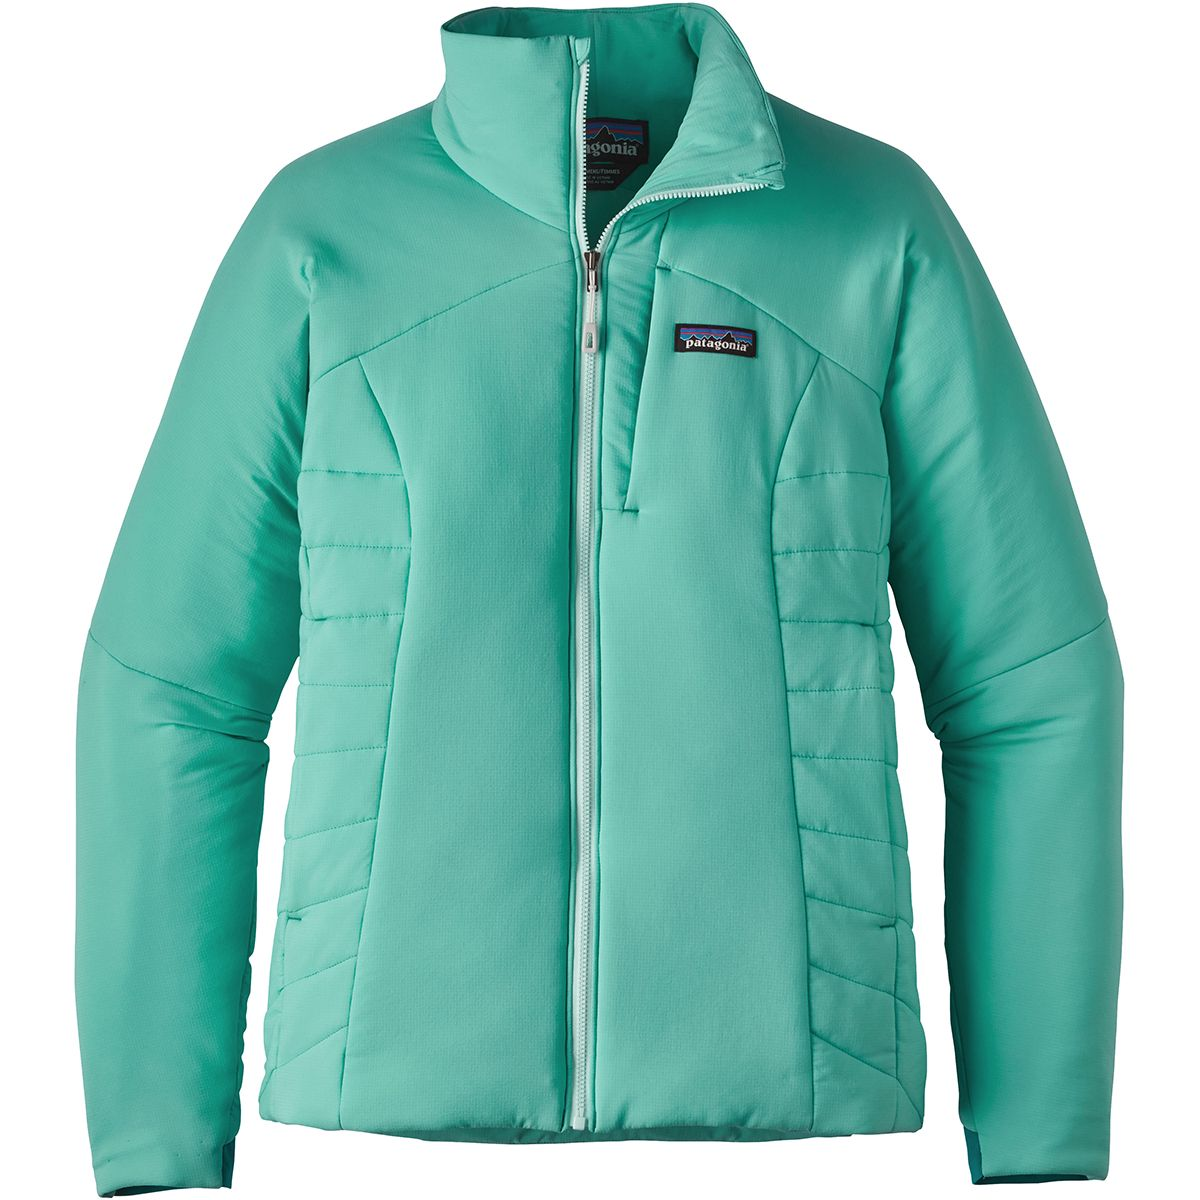 Patagonia Damen Nano-Air Jacke (Größe XS, Blau) | Isolationsjacken > Damen